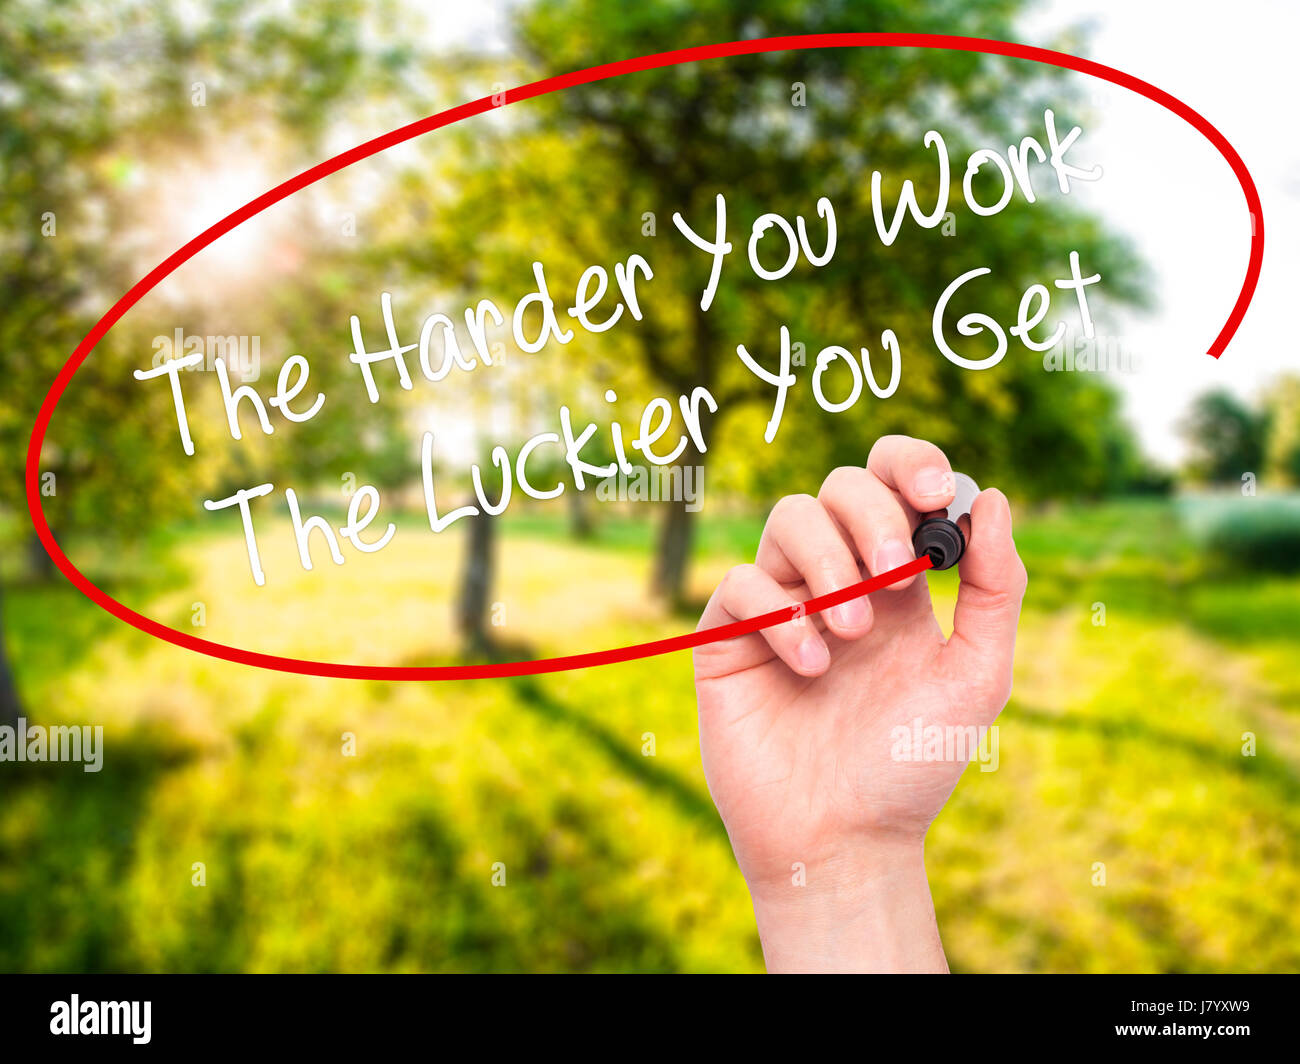 the harder you work the luckier you get meaning